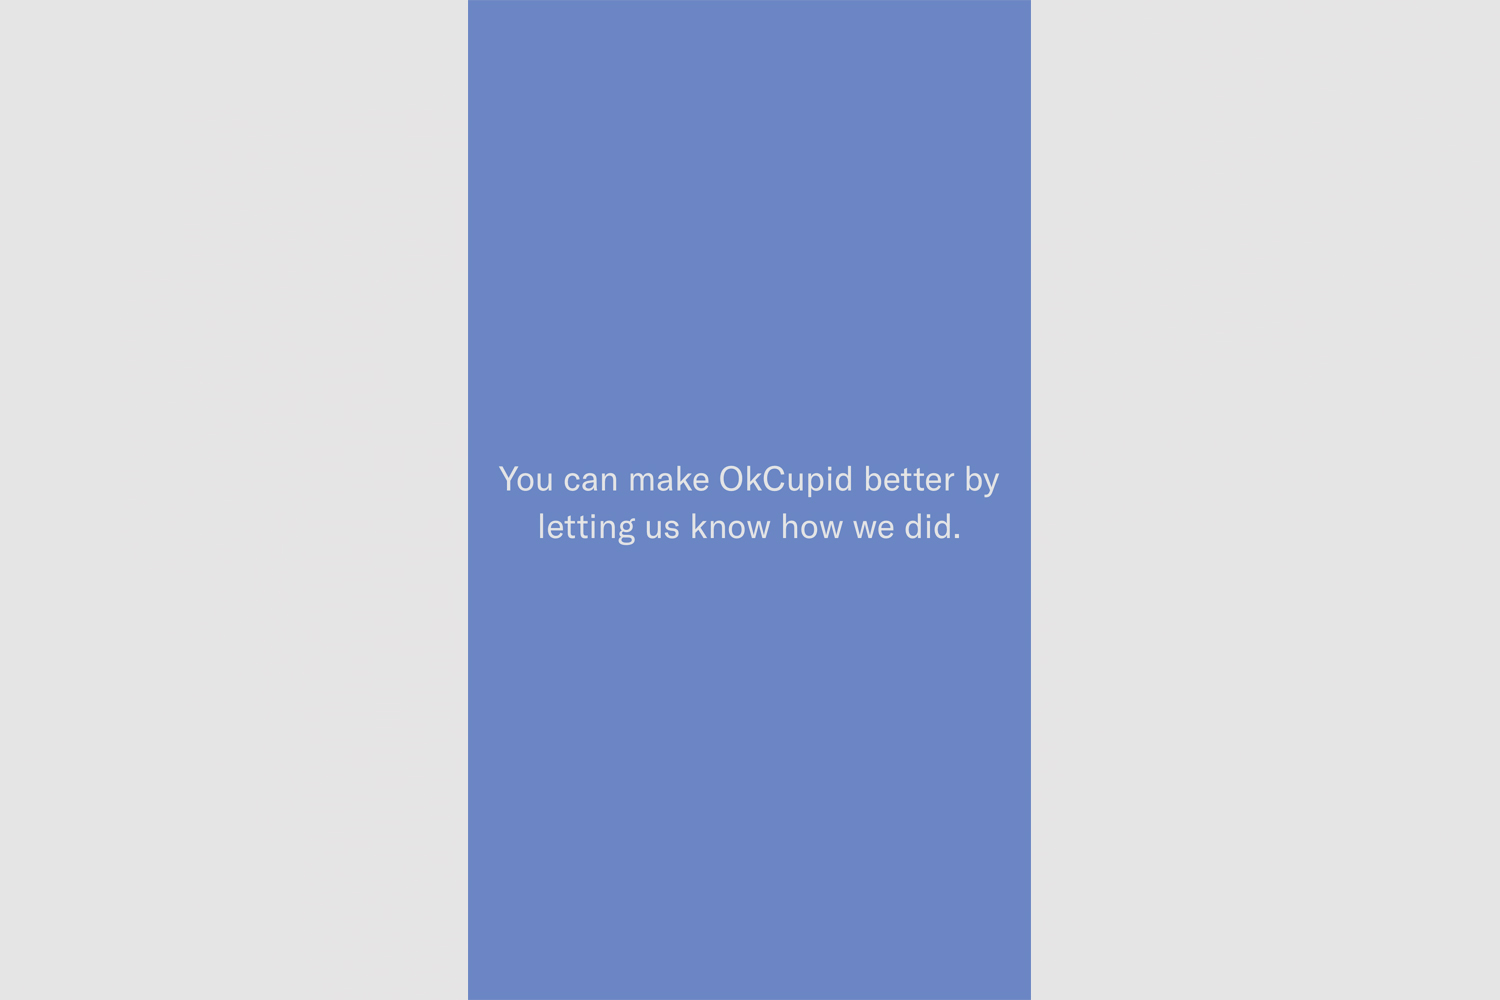 OkCupid-Delete Account from iOS. Step 5: Next you will receive a message asking what you can do to make OkCupid better